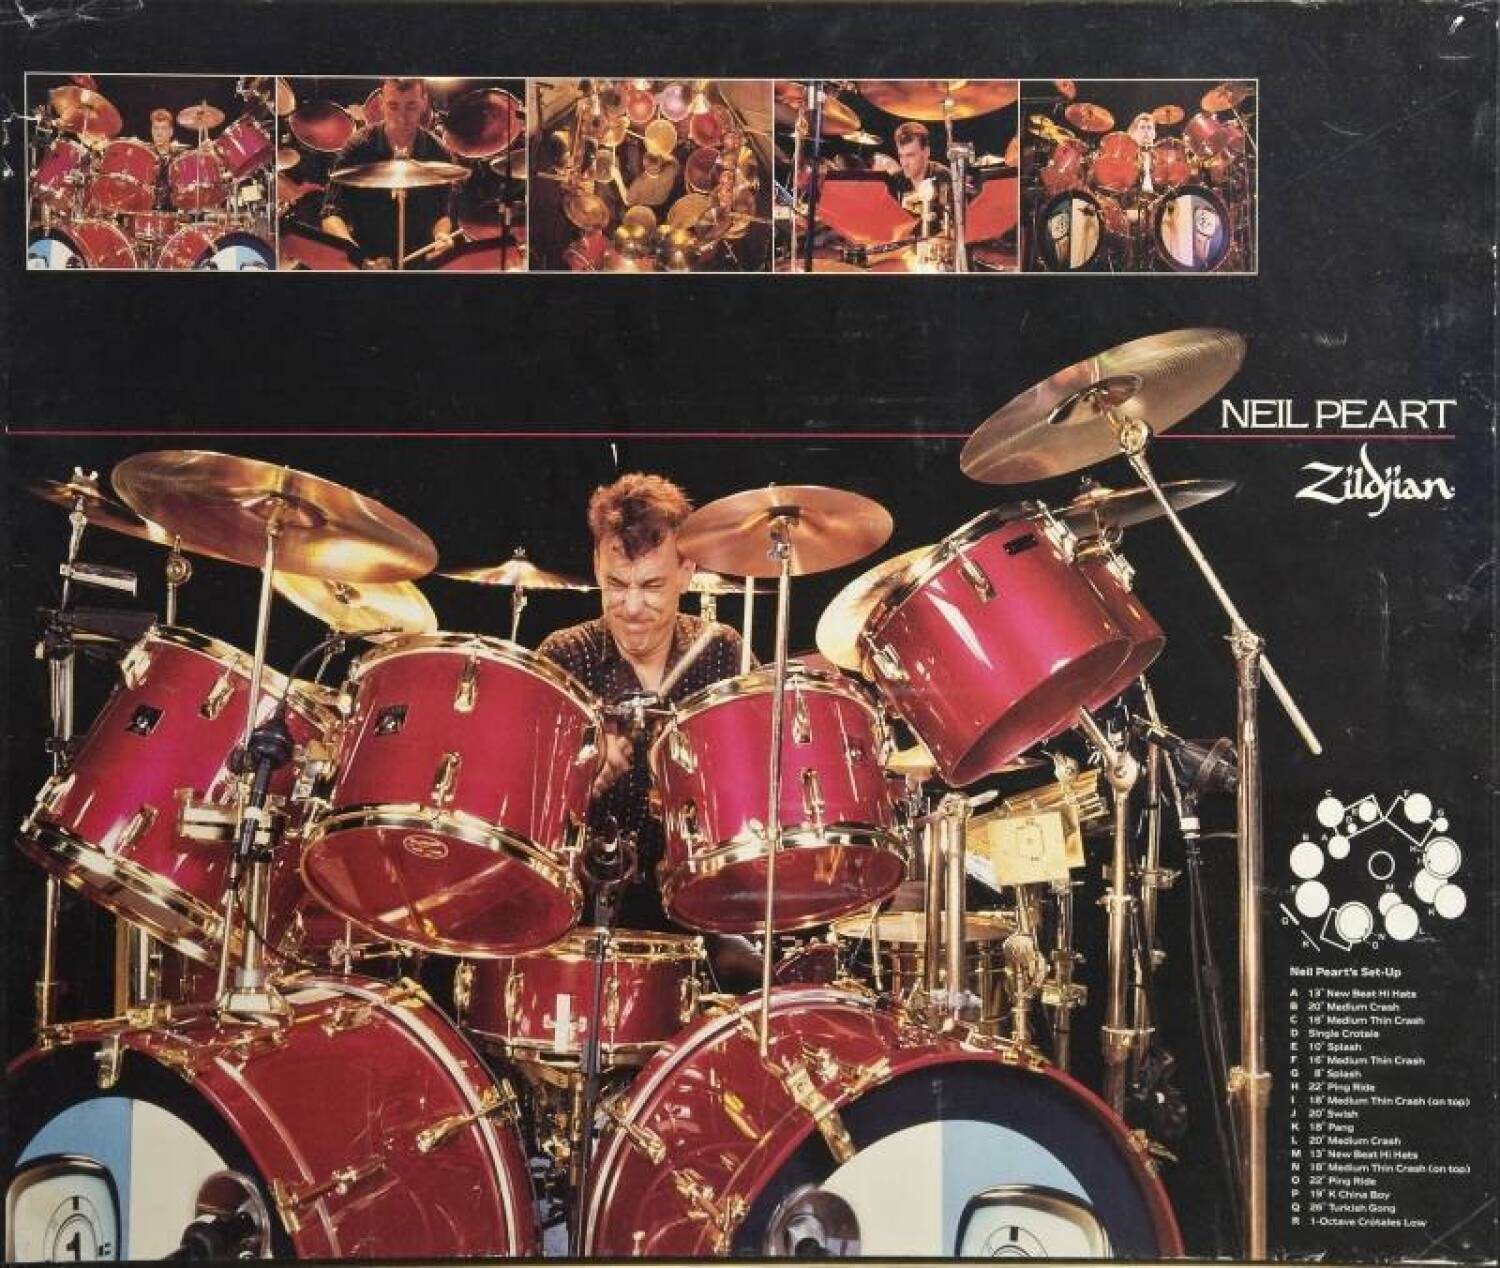 Neil Peart 1982 1986 Album And Tour Played Drum Kit Current Price